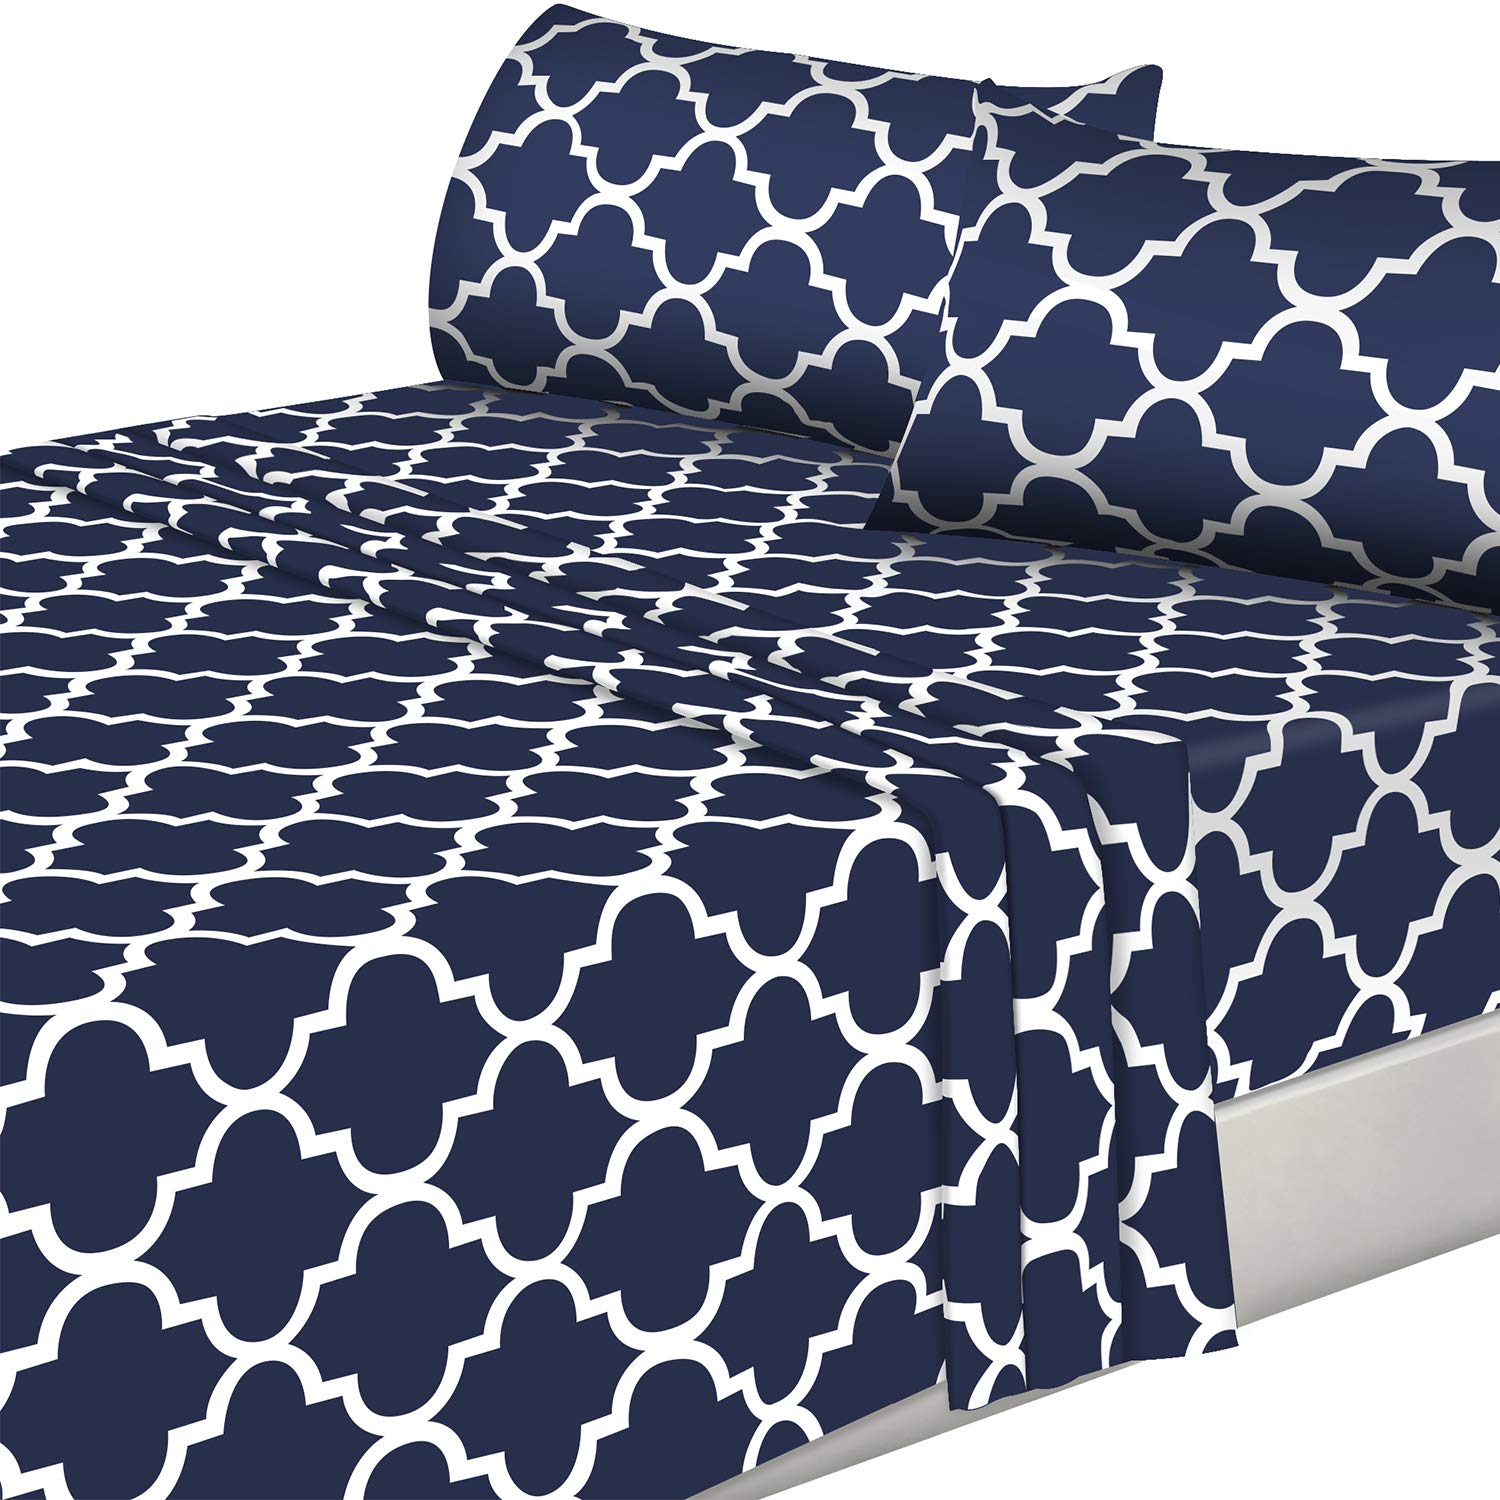 (Full, Navy) - 4 Piece Bed Sheets Set (Full, Navy) 1 Flat Sheet 1 Fitted Sheet and 2 Pillow Cases - Hotel Quality Brushed Velvety Microfiber - Luxurious - Extremely Durable - by Utopia Bedding B00VNHD92U ネイビー フル